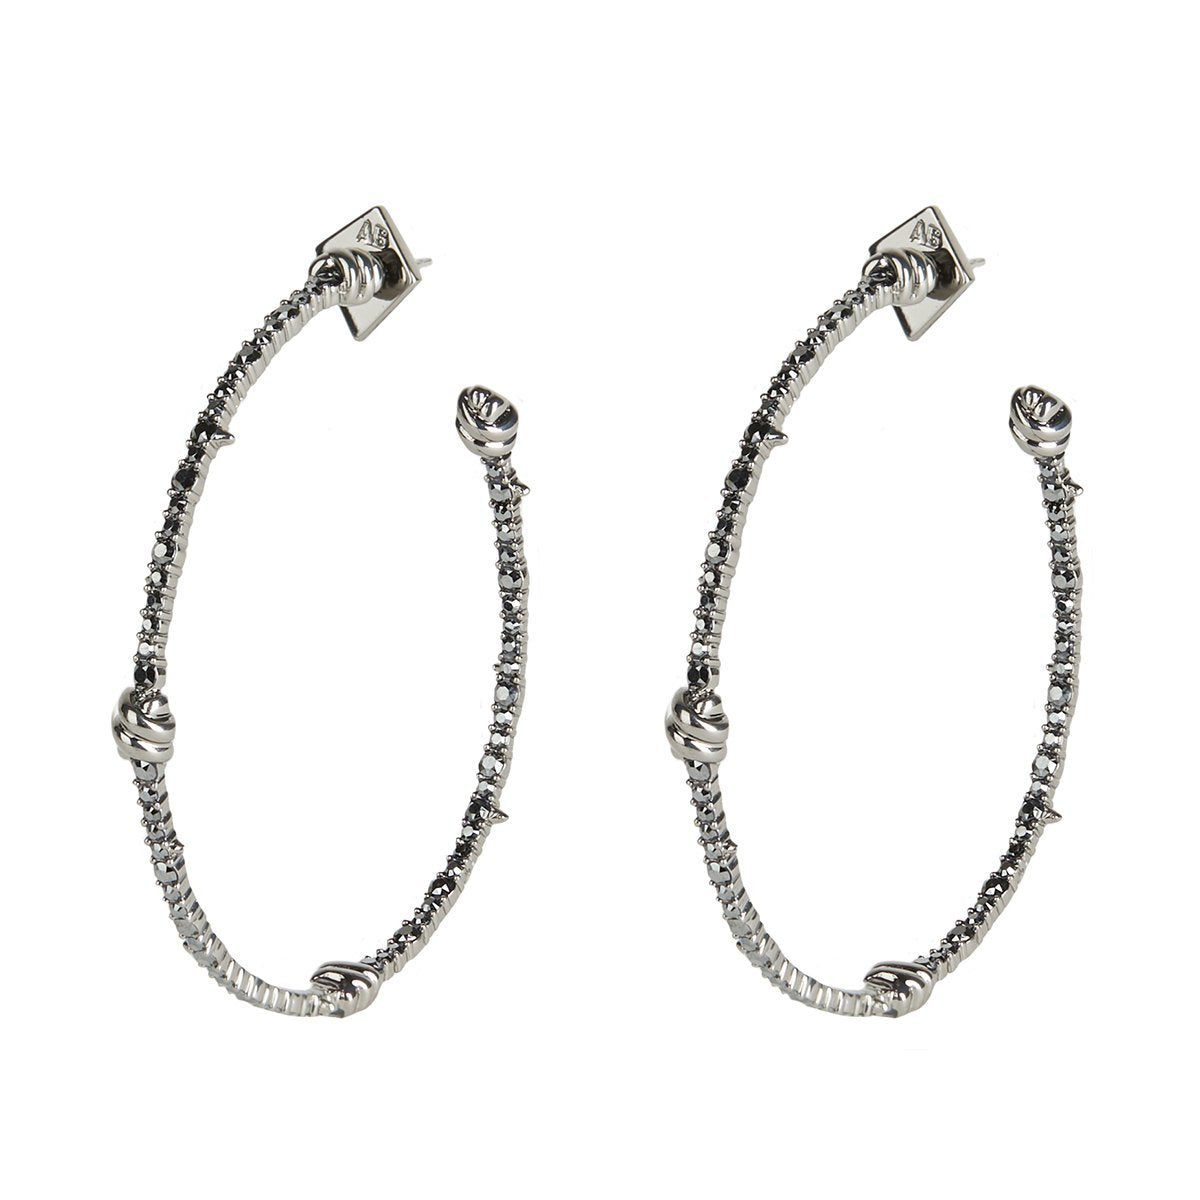 Crystal Pave Knotted Hoop Earring